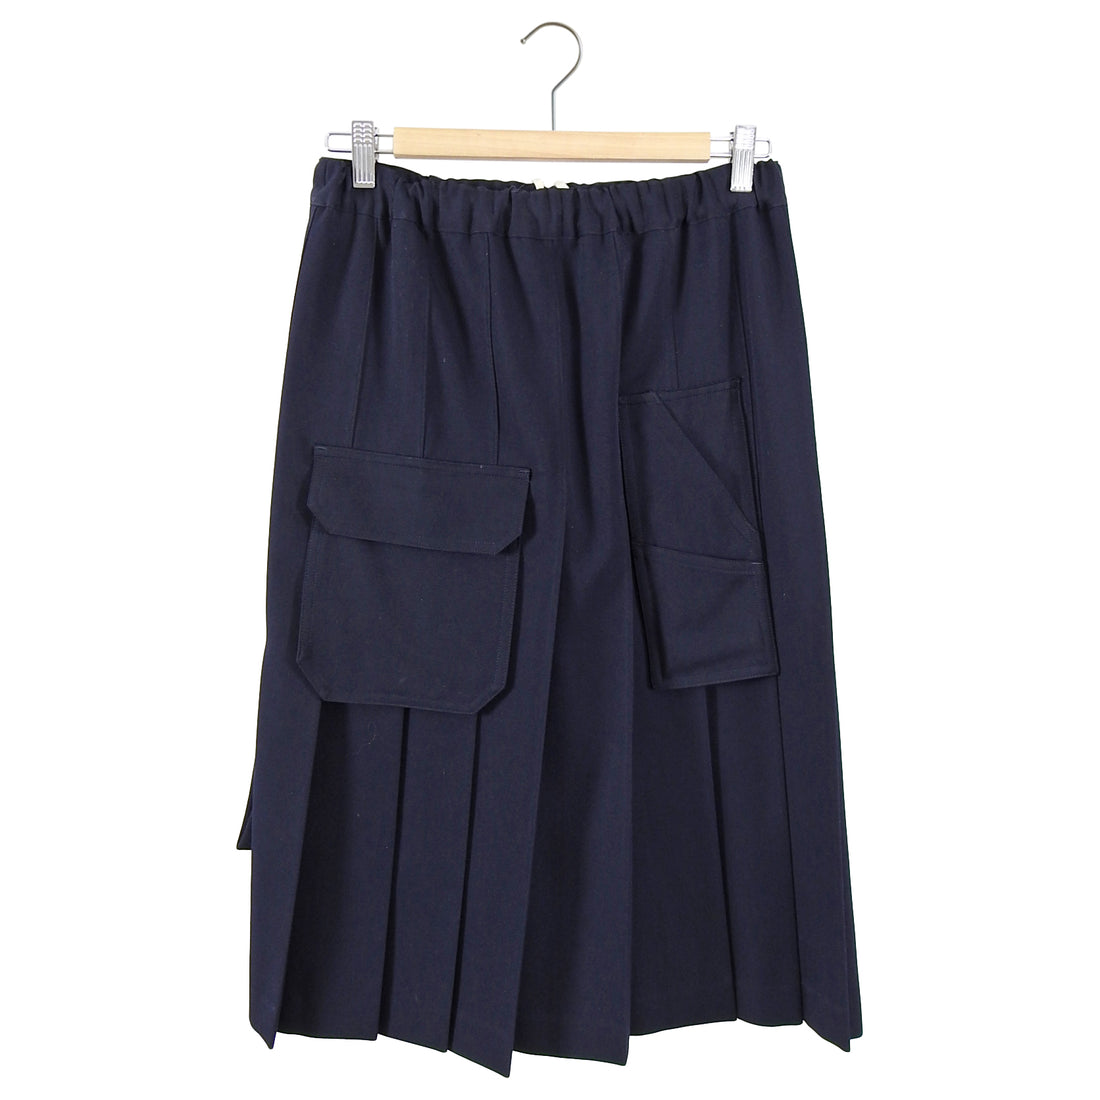 Comme des Garcons Navy Wool Gabardine Pleat Skirt - XS